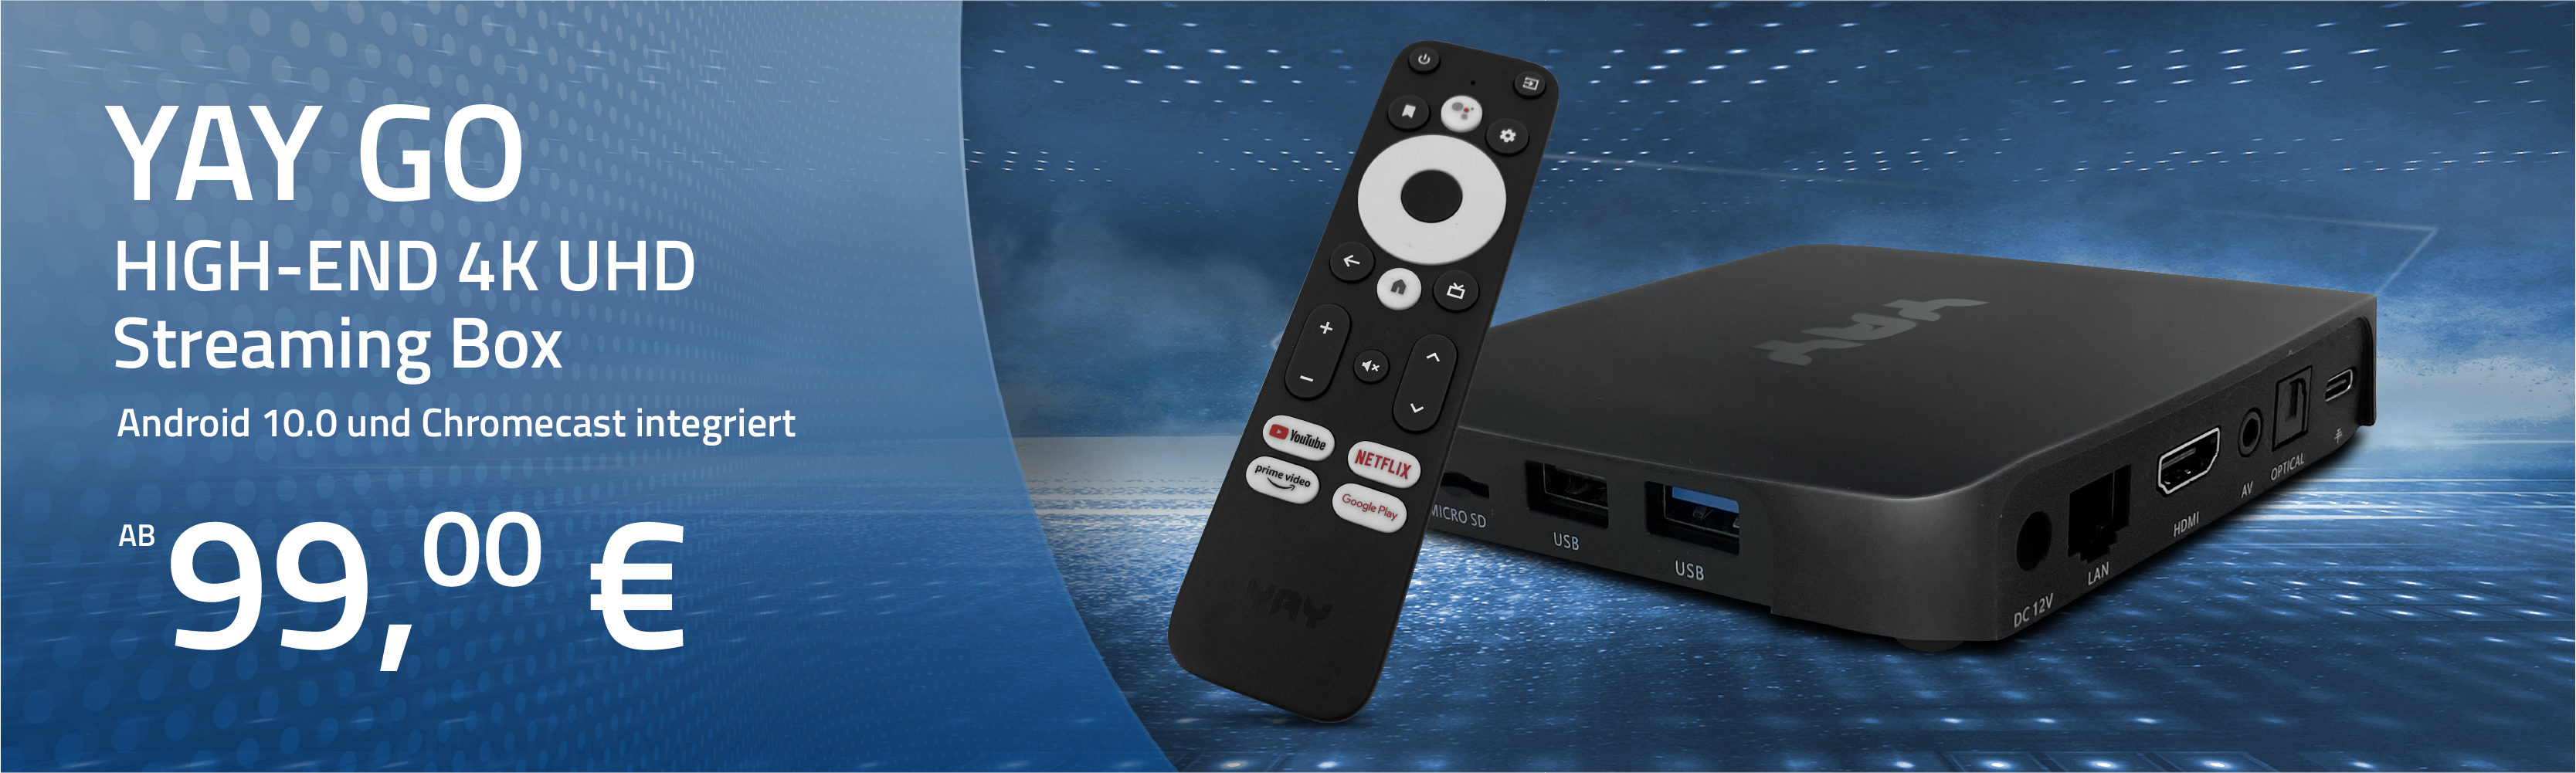 https://www.hm-sat-shop.de/ip-tv/2827/yay-go-android-tv-high-end-4k-uhd-streaming-box-android-10.0-und-chromecast-integriert